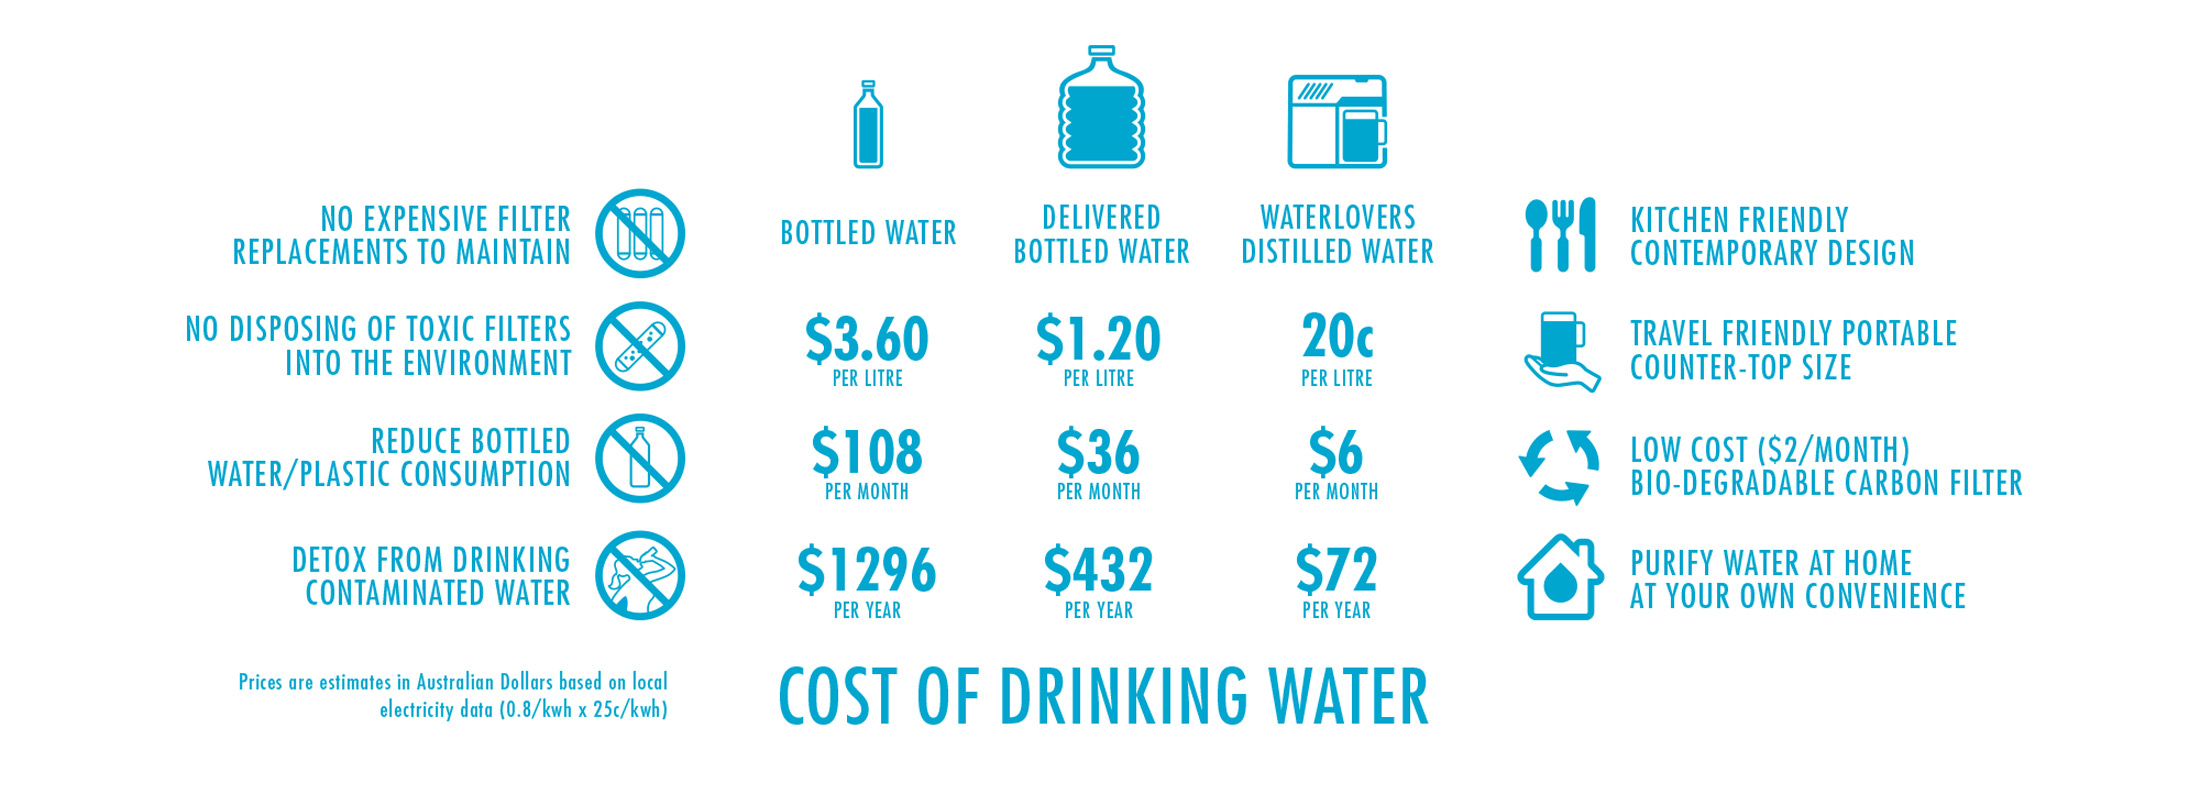 waterlovers_cost-of-water-comparison2